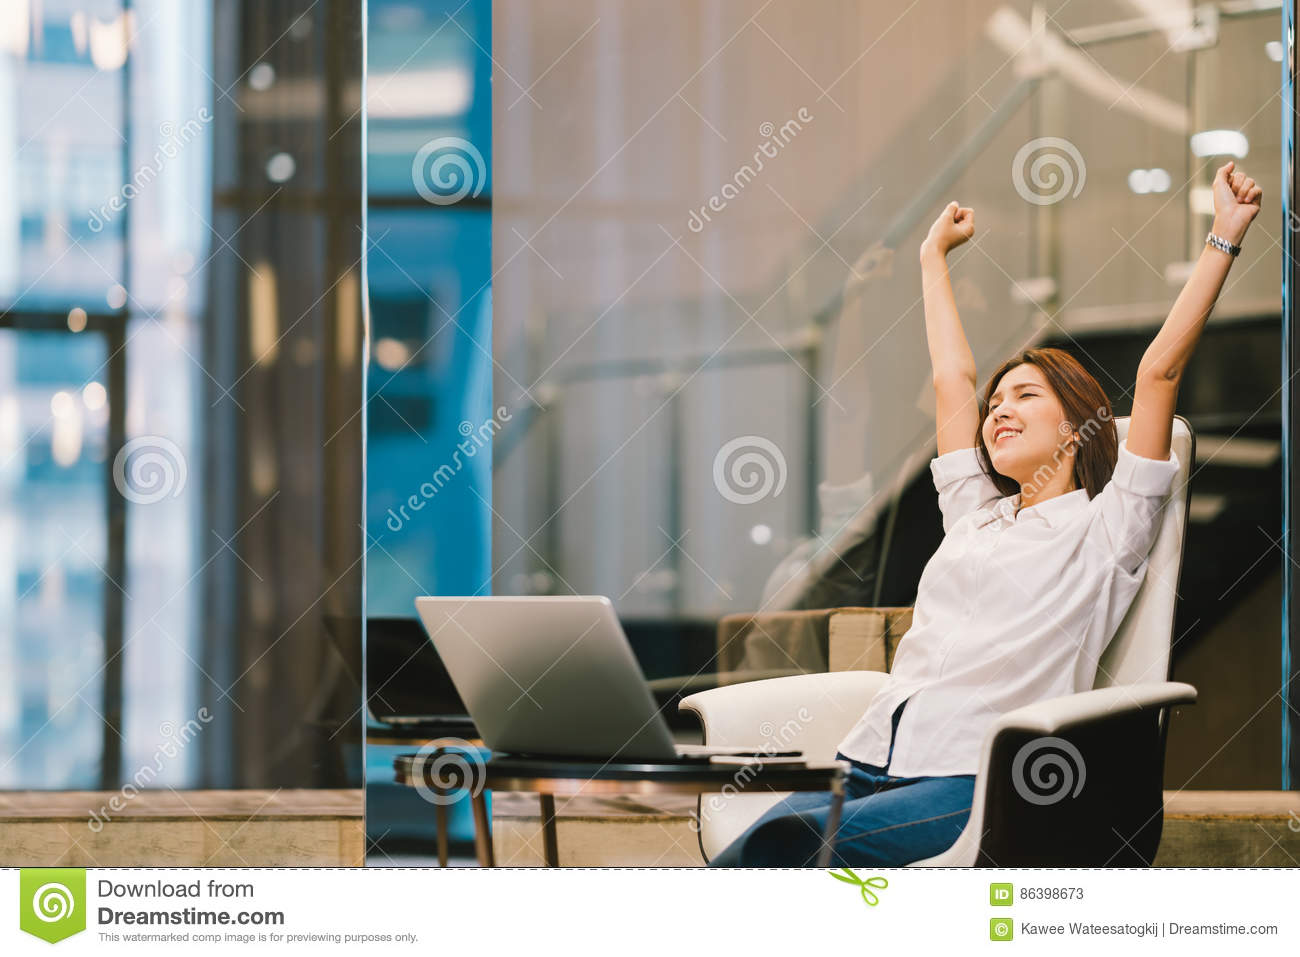 Beautiful Asian girl celebrate with laptop, hands stretch or finish work success pose